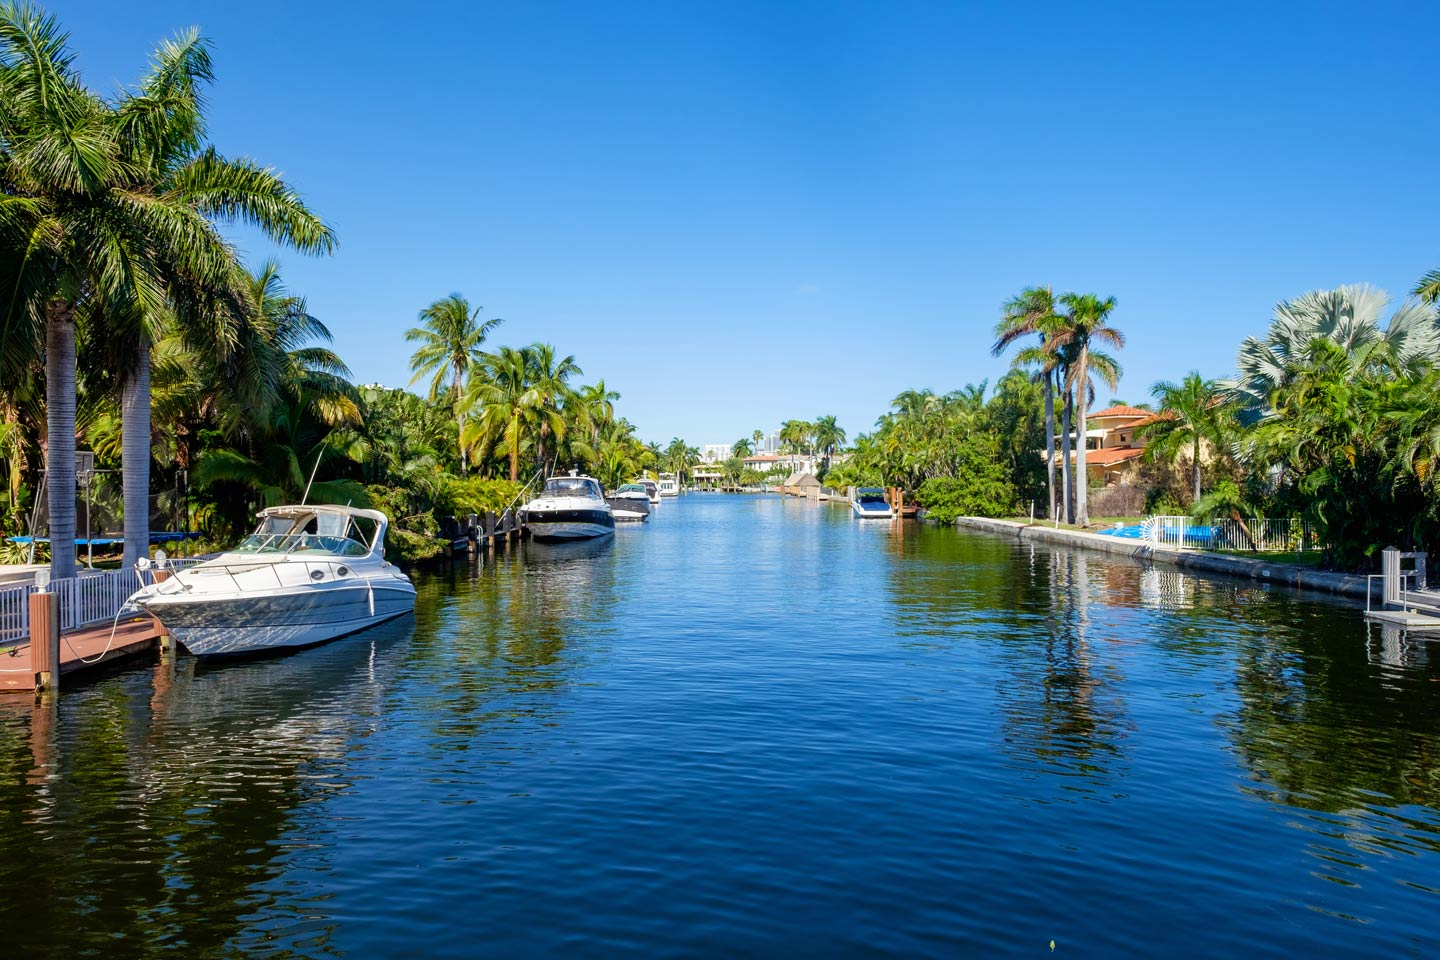 A typical waterfront community in South Florida with docked fishing boats on the water